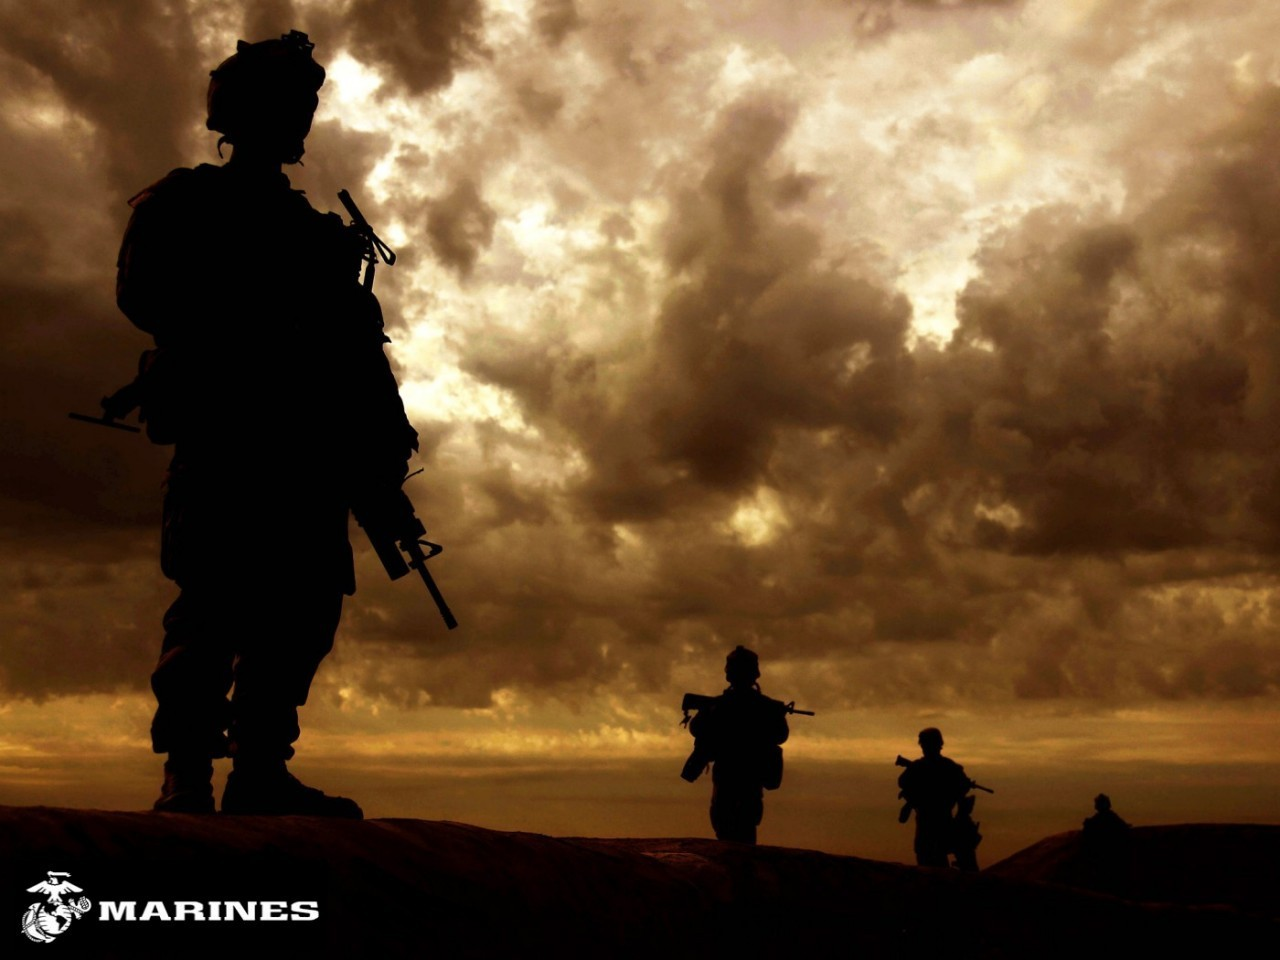 Army wallpaper hd wallpapersafari - Awesome army wallpapers ...